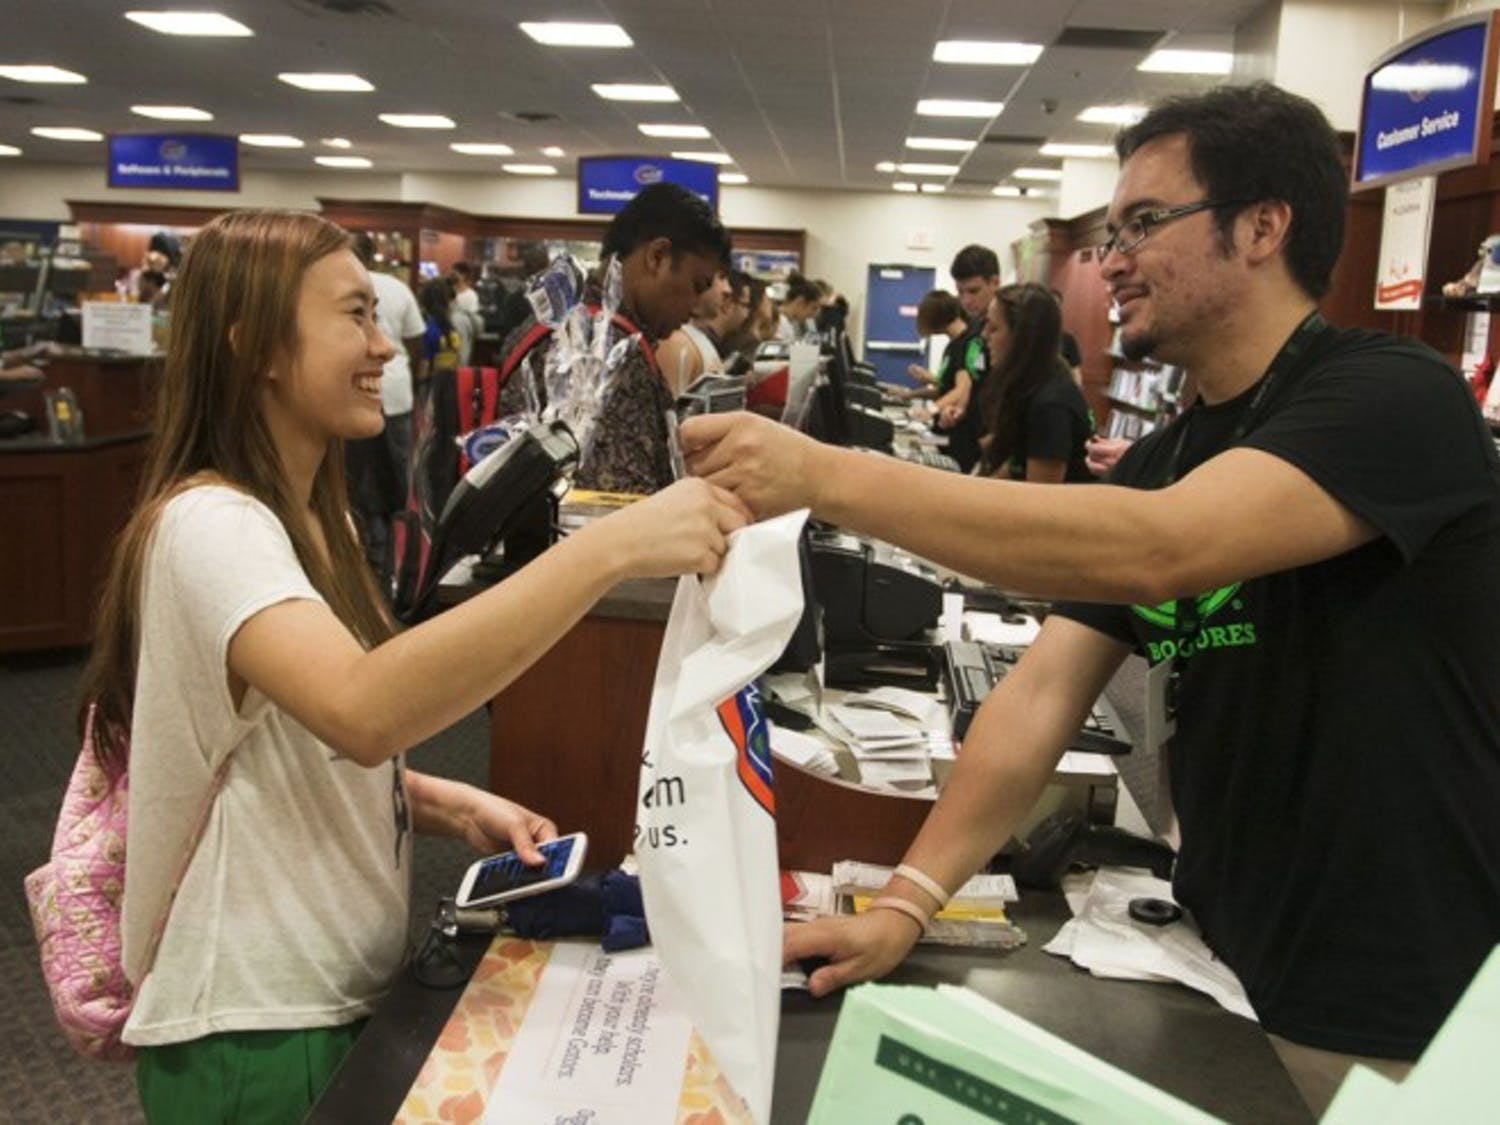 Freshman Truc Nguyen, an 18-year-old nutrition major, purchases books for her first semester from bookstore associate David Martinez, 25, Tuesday afternoon